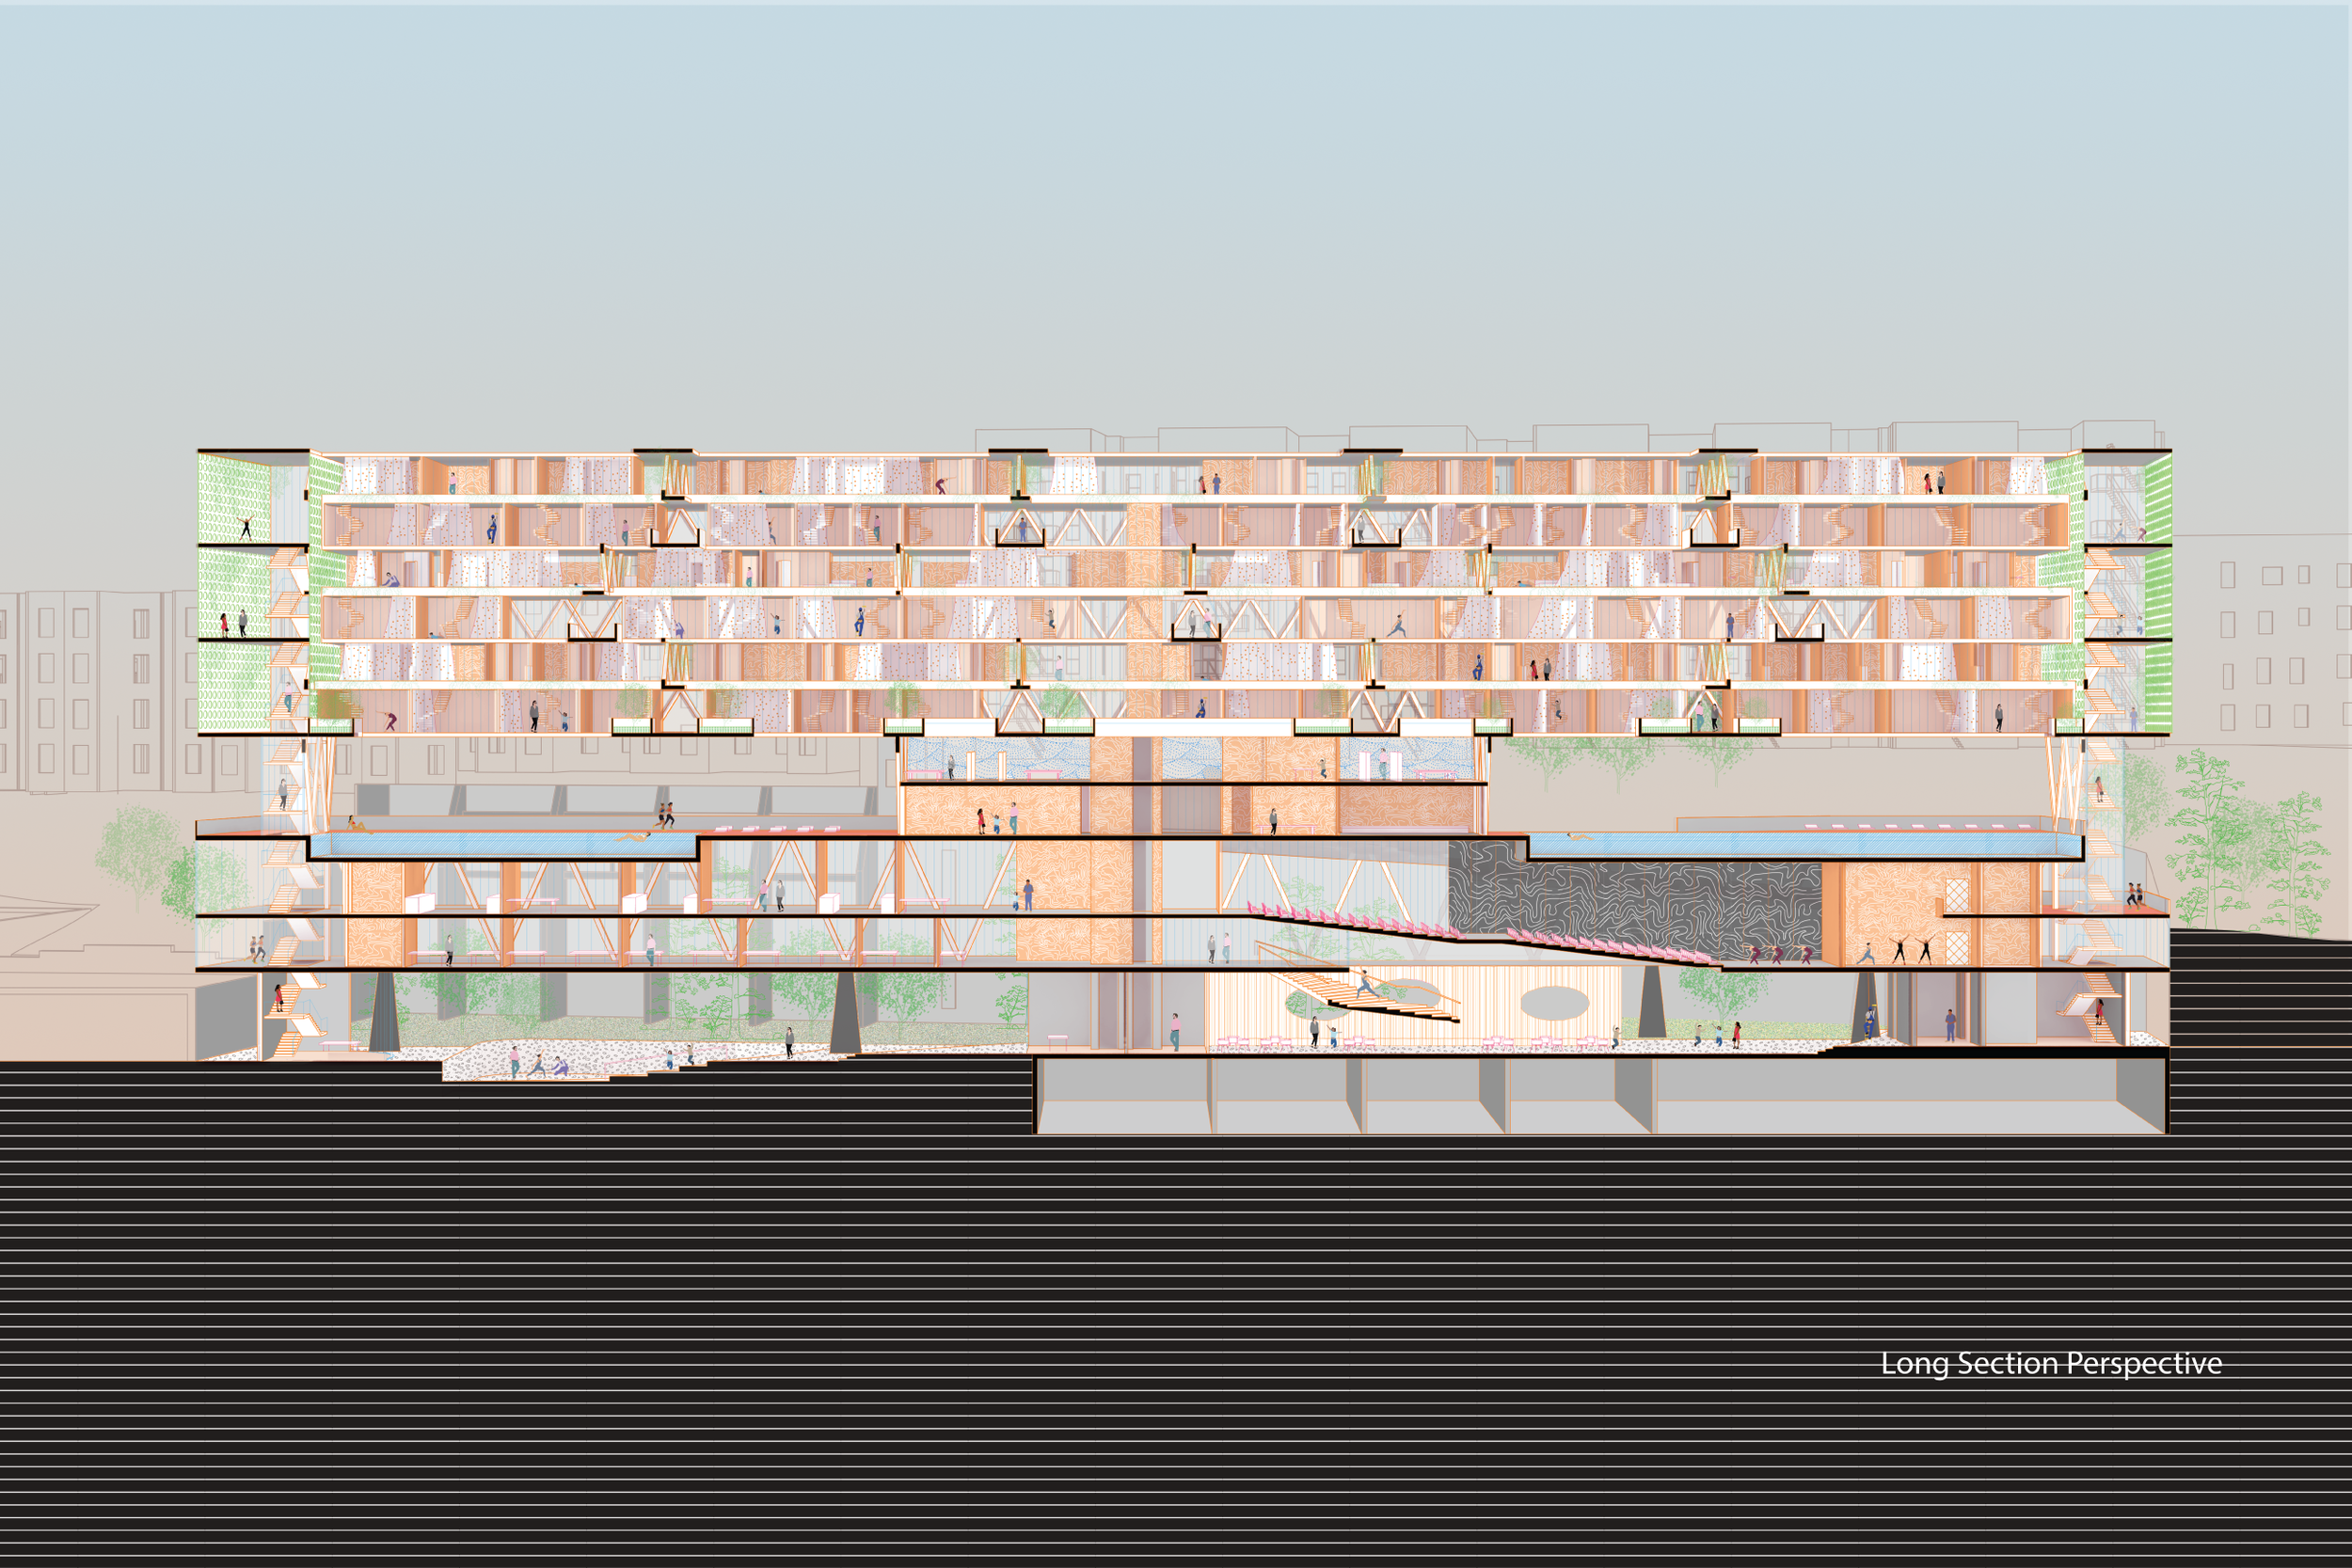 Section Perspective, upper level with program of housing, center skylight courtyard, corridors, maker space; lower level of open swimming pool, public ground floor